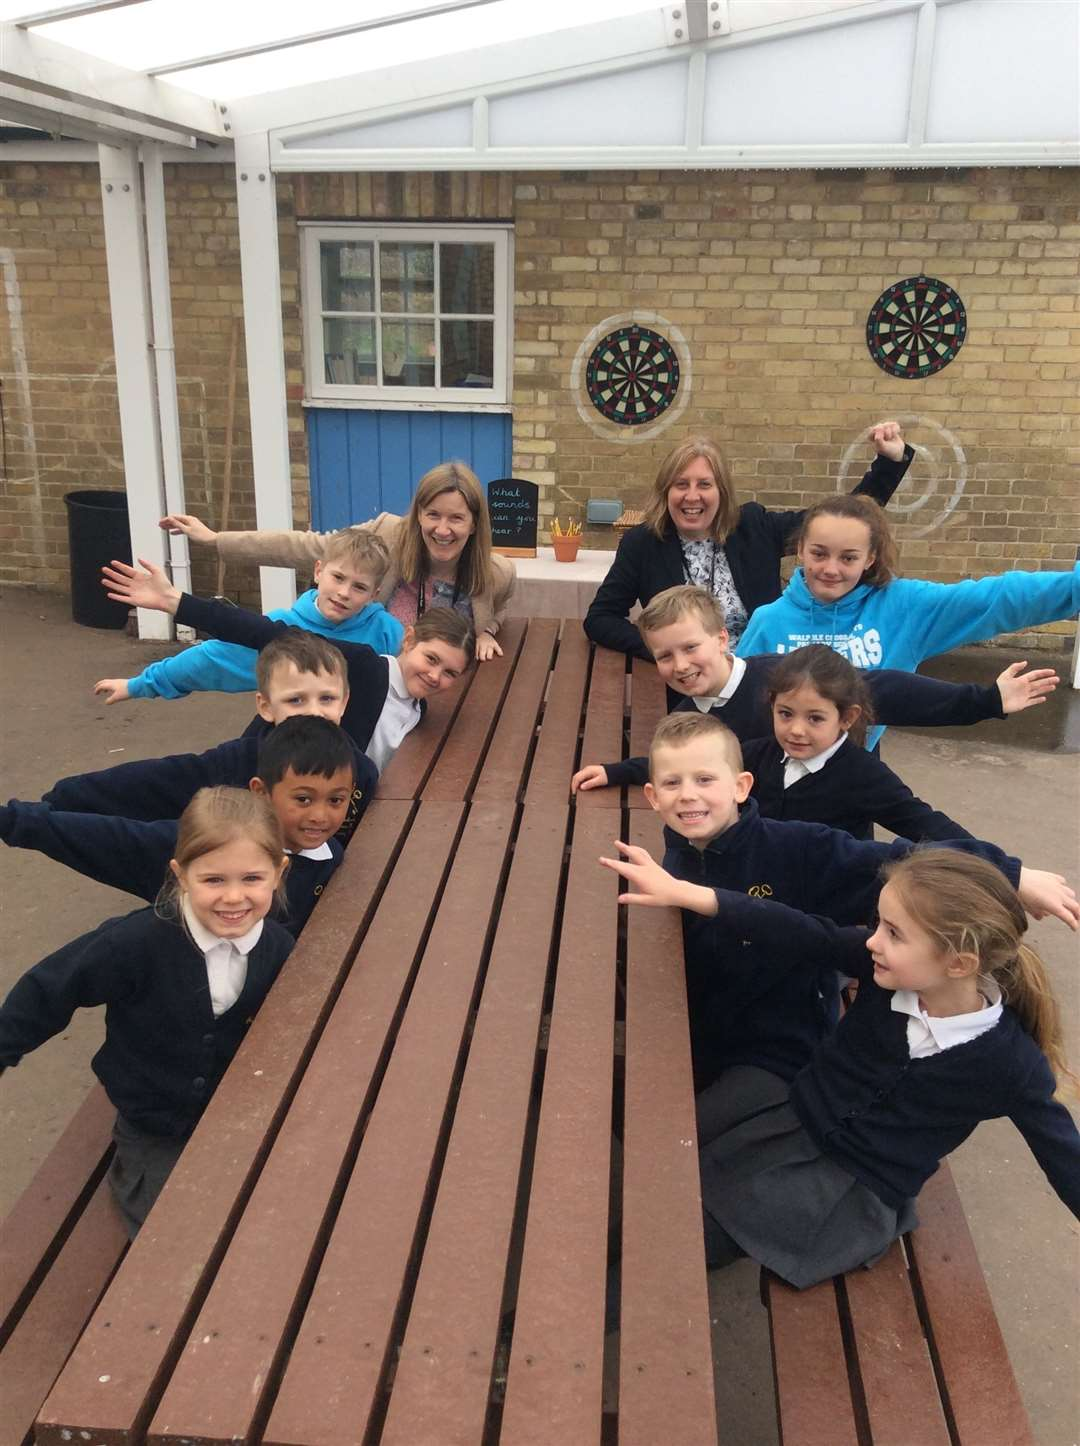 Walpole Cross Key Primary School pupils happy with a Good grading from Ofsted. (8258521)